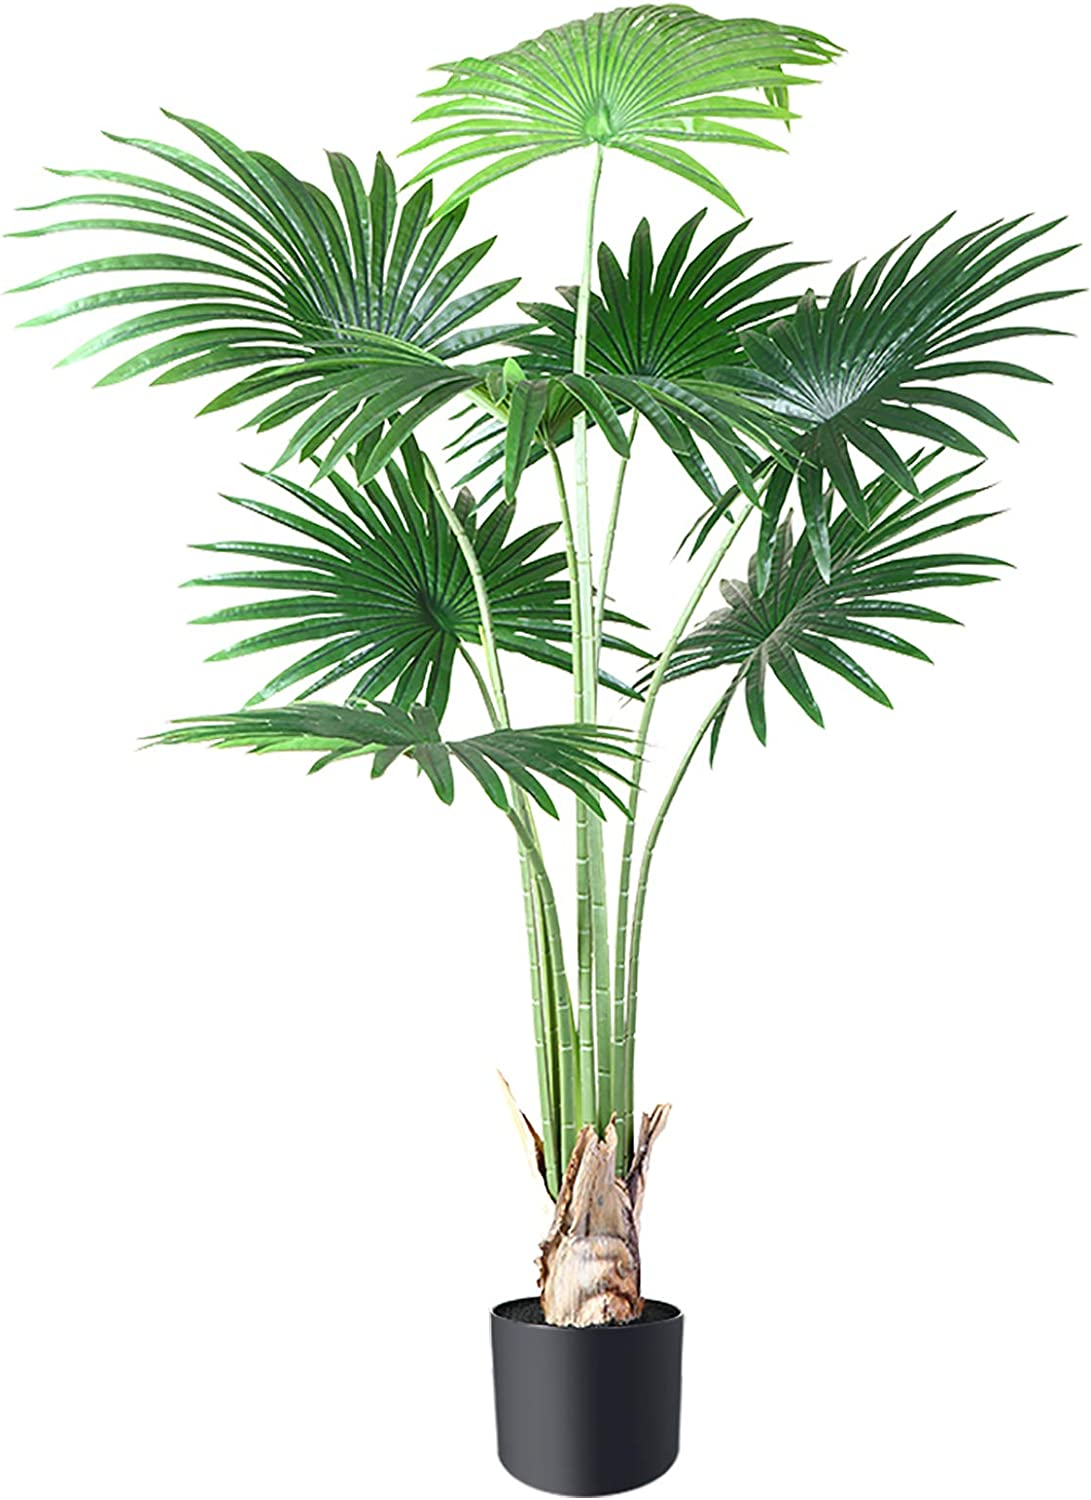 CROSOFMI Artificial Desert Fan Palm Tree 4.6 Feet Fake California Palm Plant,Perfect Faux Fan Palm Plants in Pot for Indoor Outdoor House Home Office Garden Modern Decoration Housewarming Gift